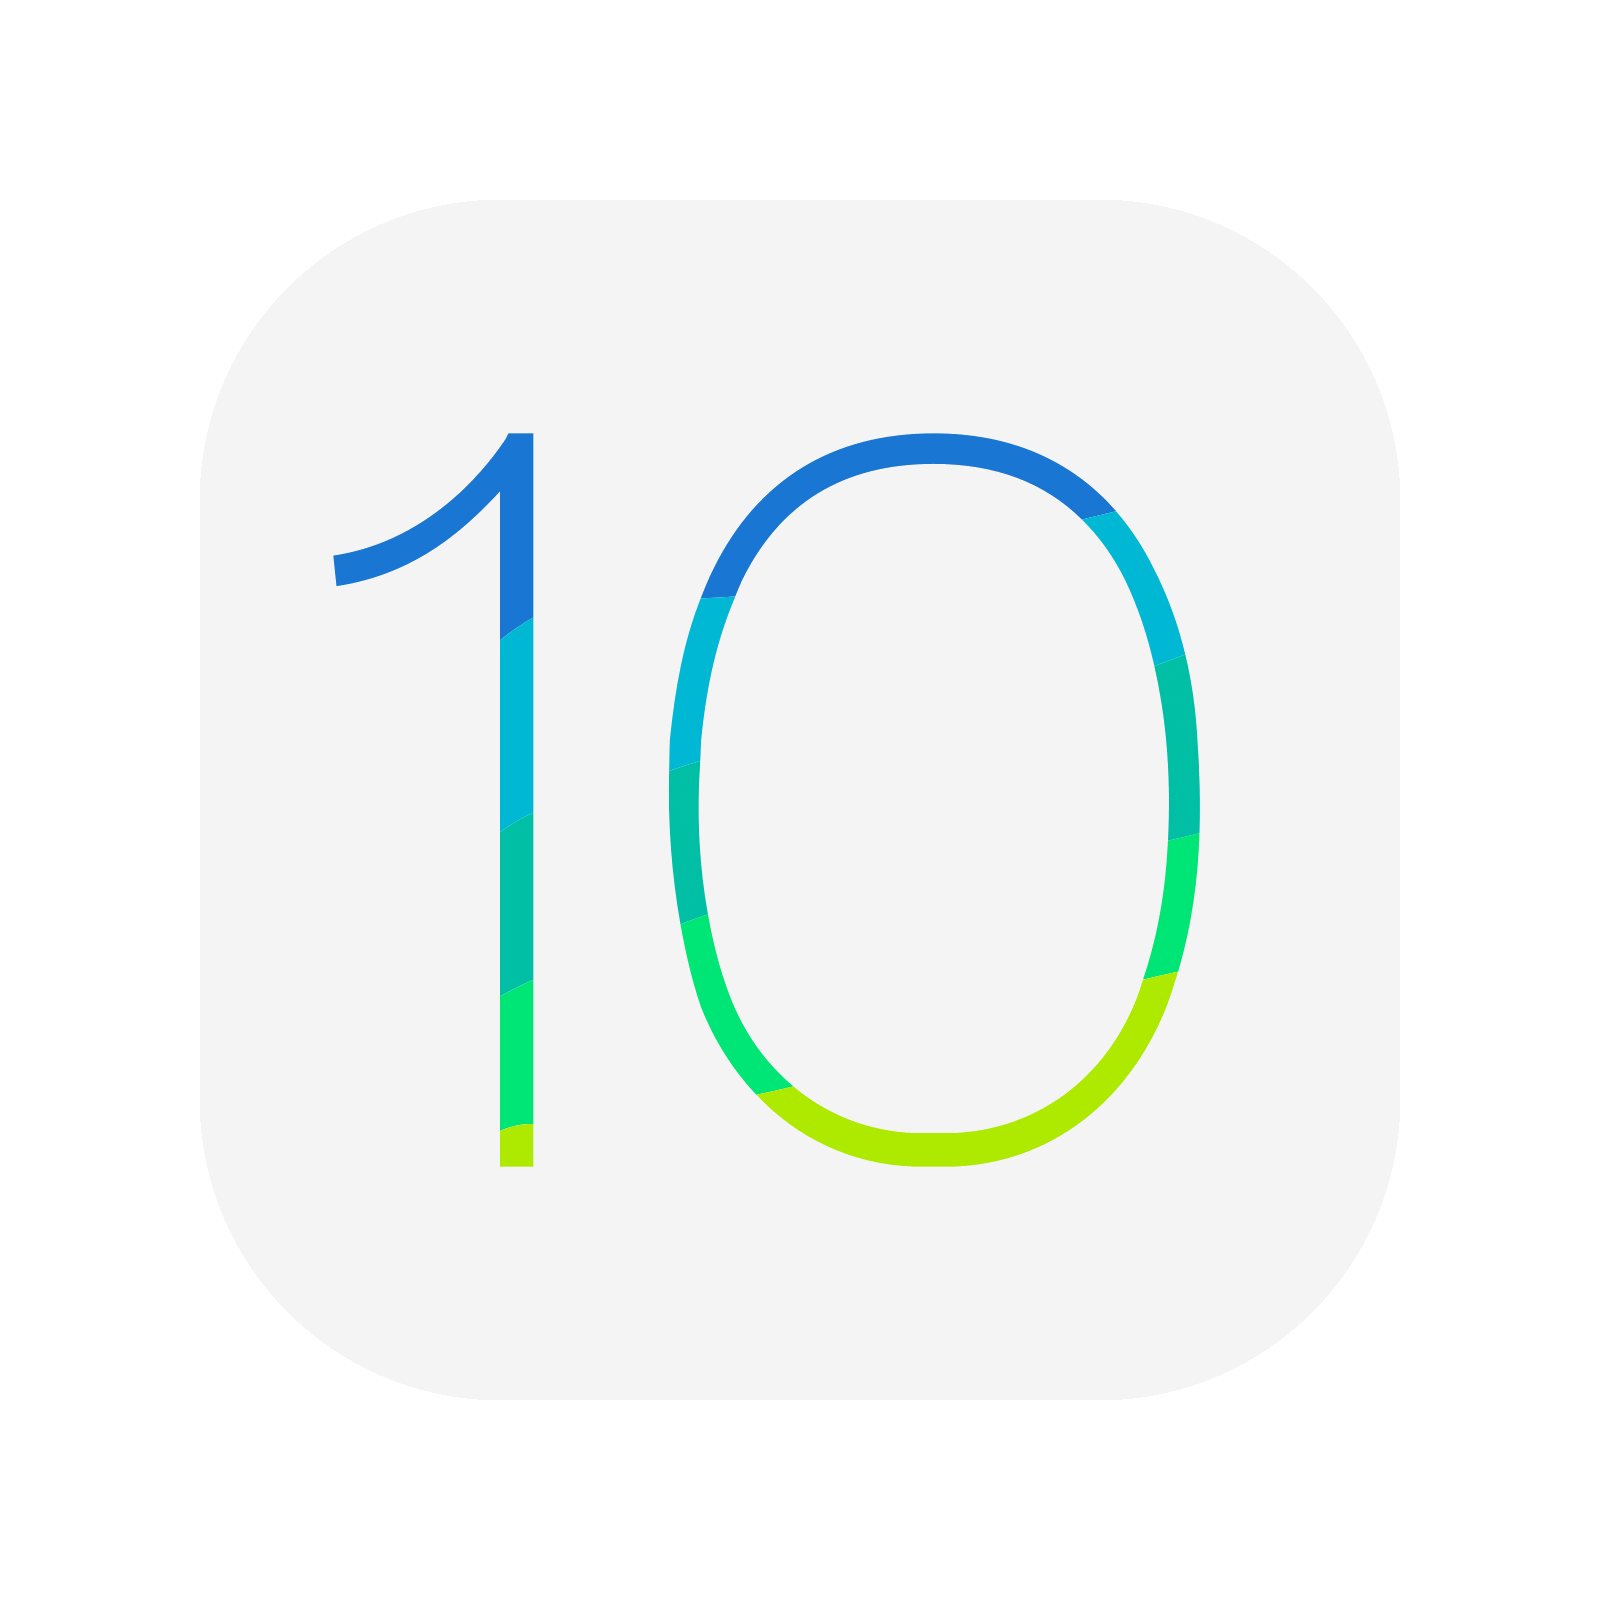 Iphone health icon png. Ios free download and